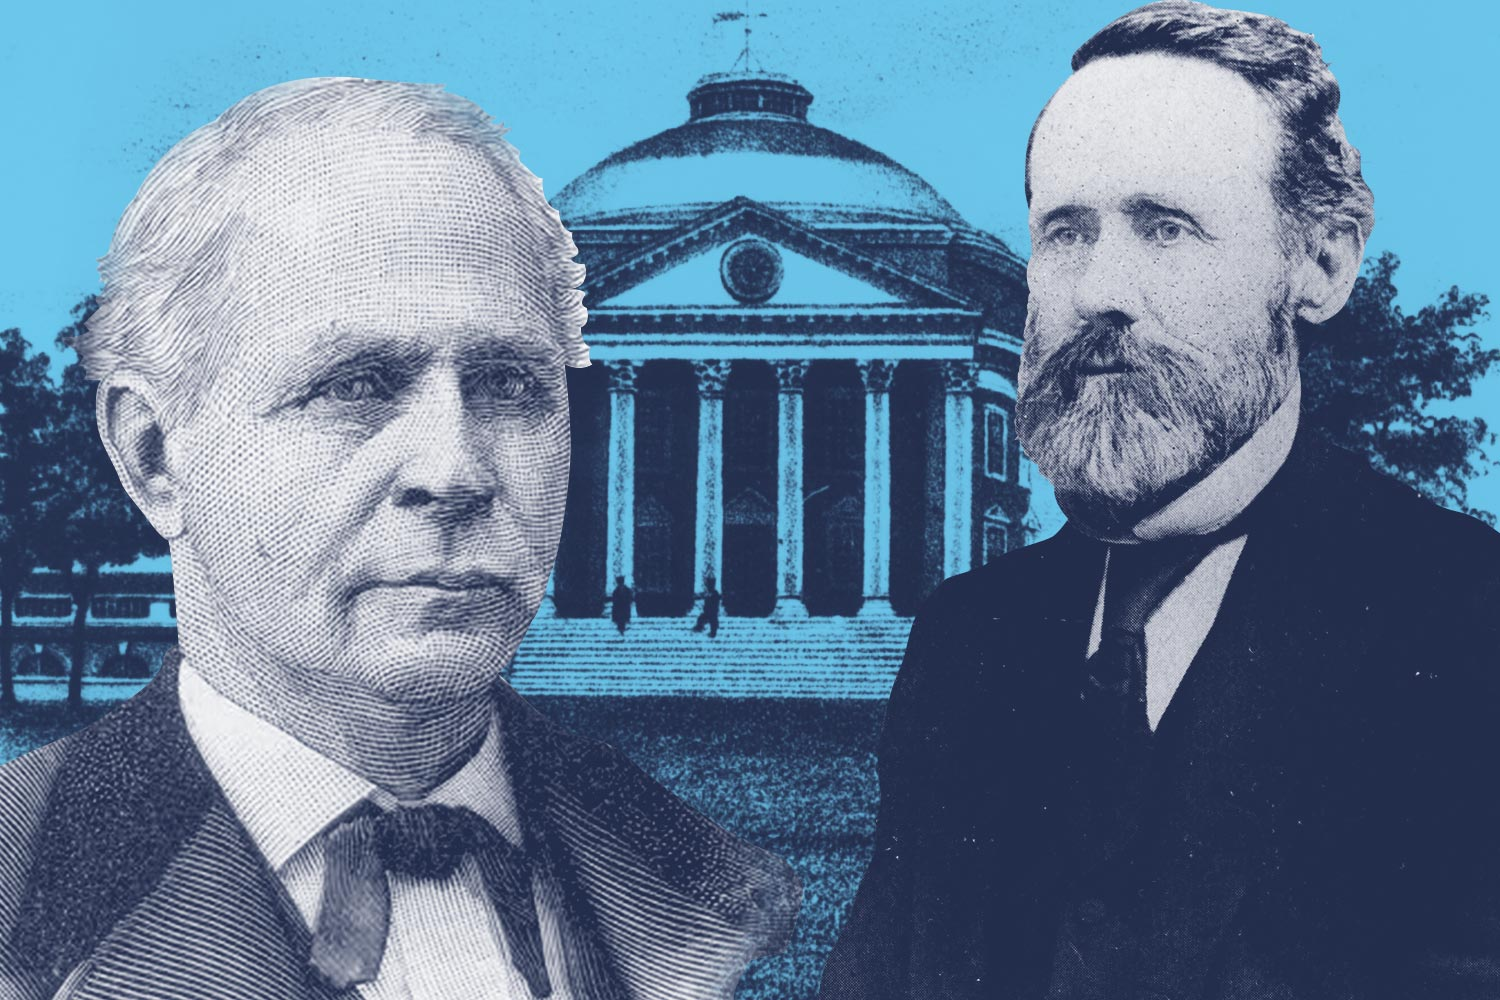 James O. Broadhead, left, owned slaves and served in the Missouri Secession Convention, where he argued against secession to protect slavery. William Fishback spoke out against secession, and escaped to Missouri after hostilities broke out.